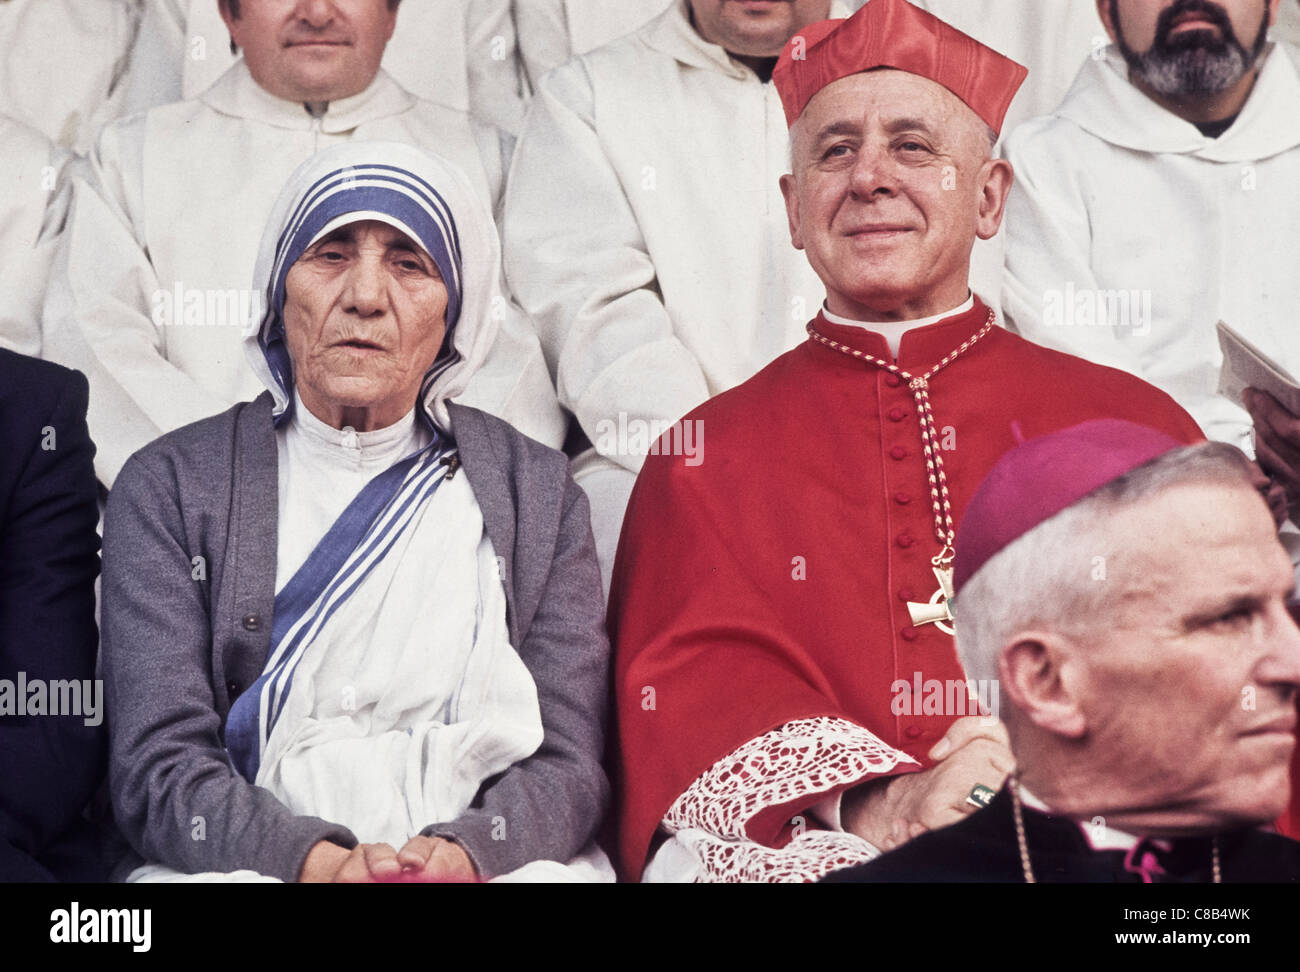 Cardinal Giovanni Umberto Colombo with Mother Teresa - Stock Image